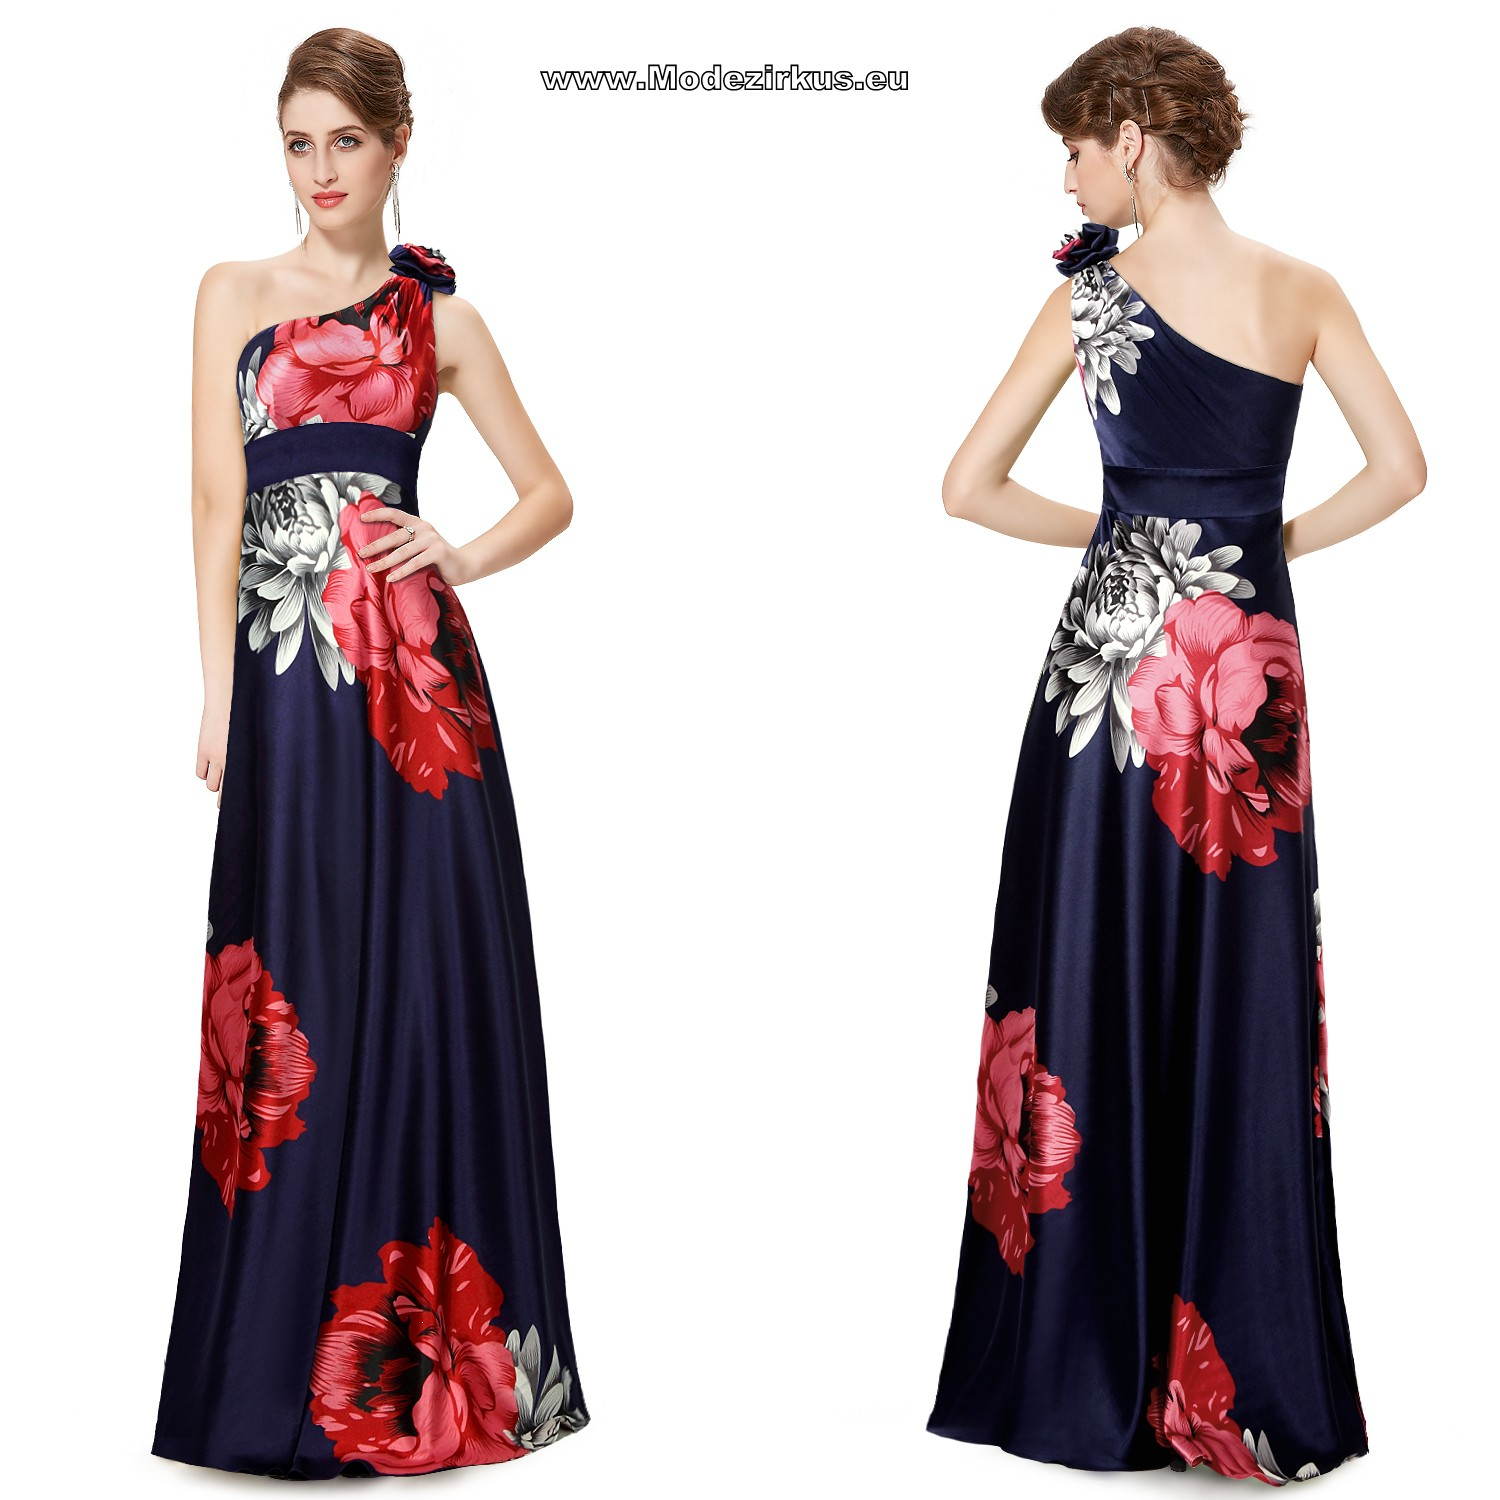 Langes empire kleid